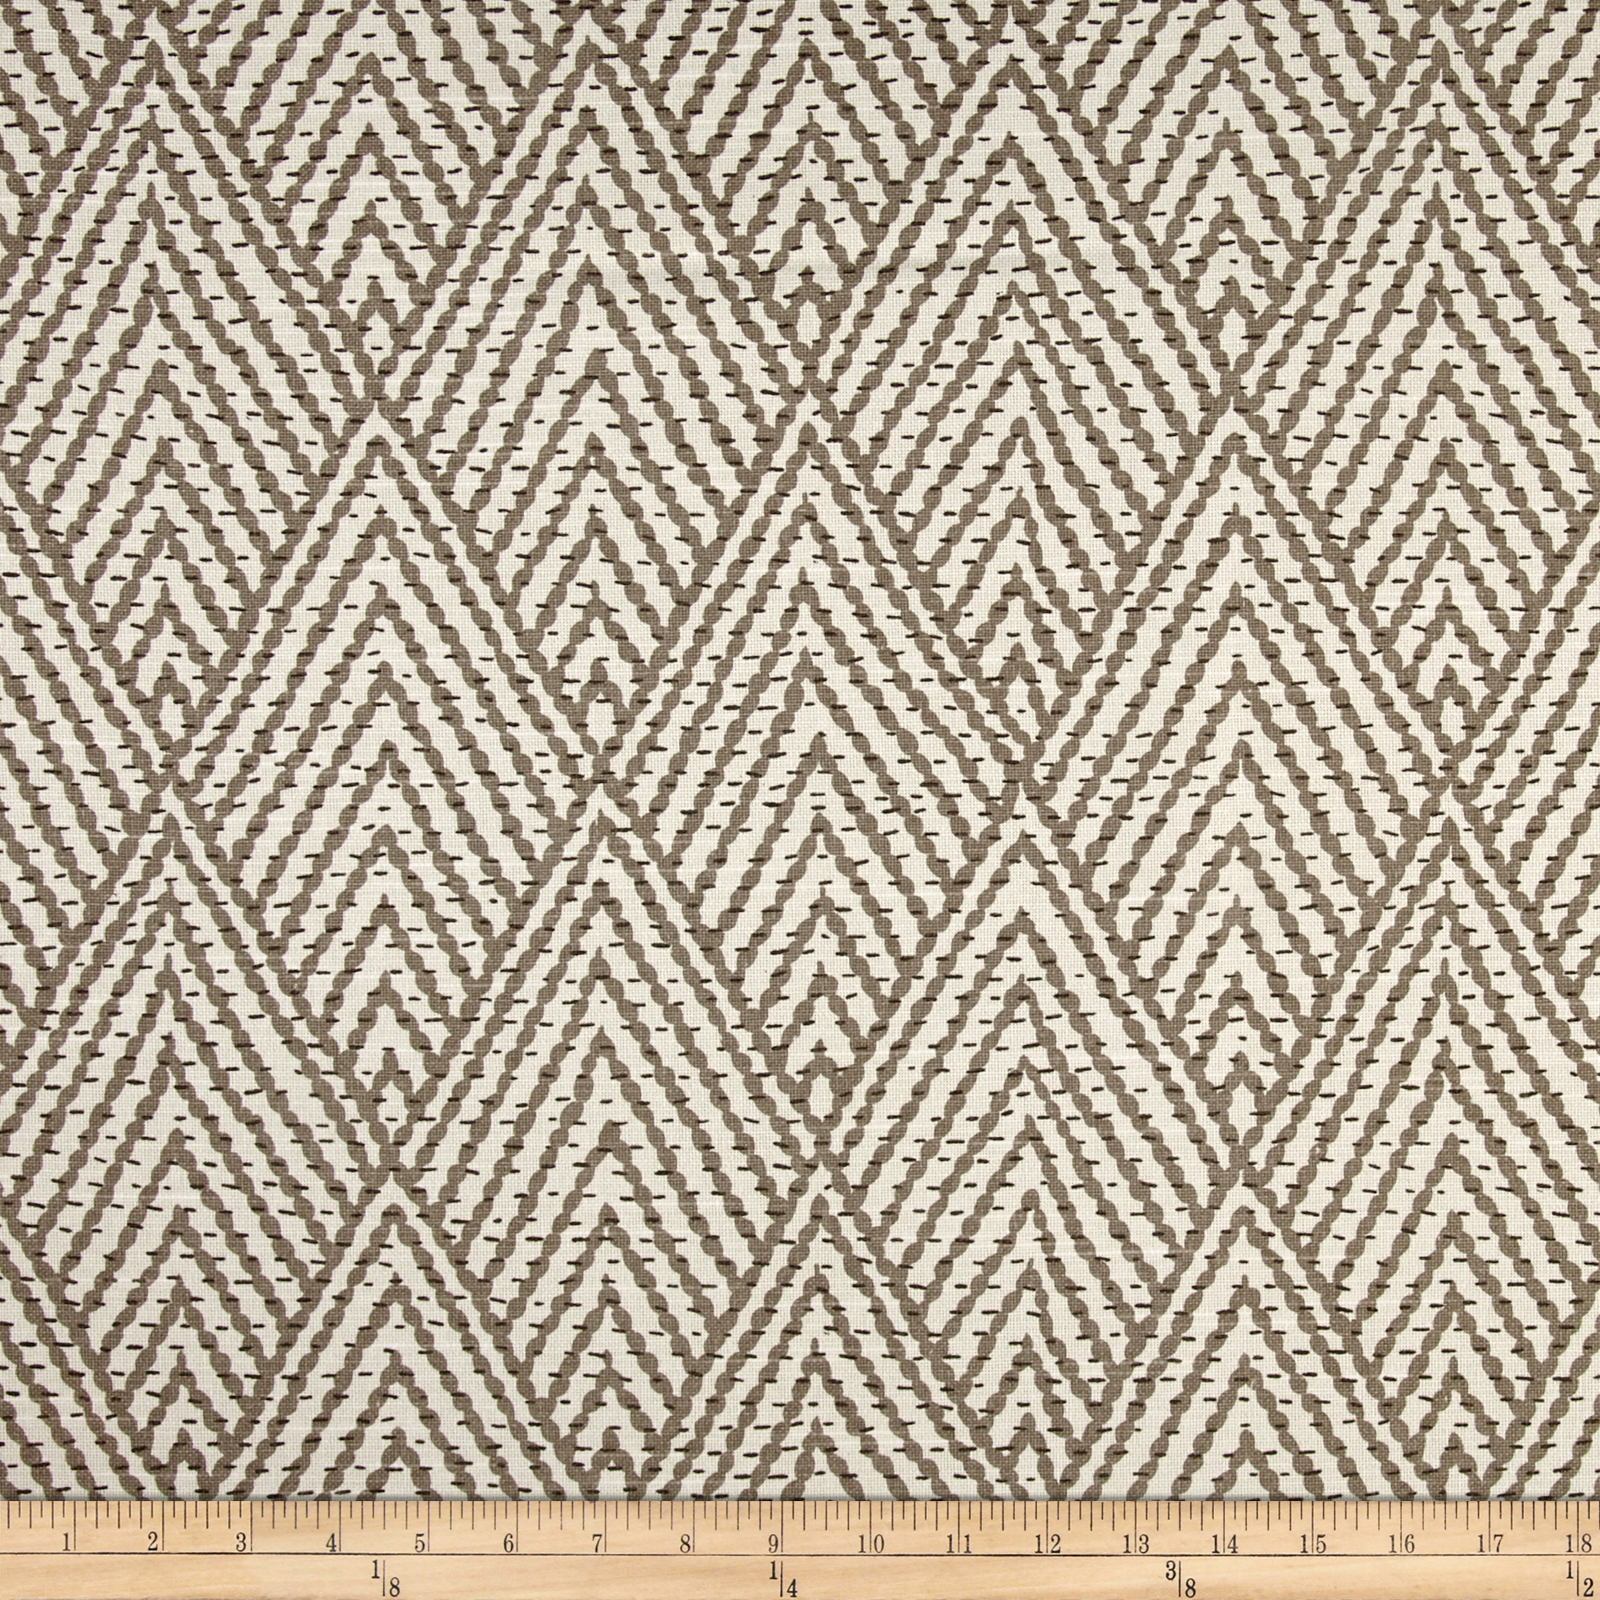 Lacefield Tahitian Stitch Tusk Fabric by Lacefield in USA